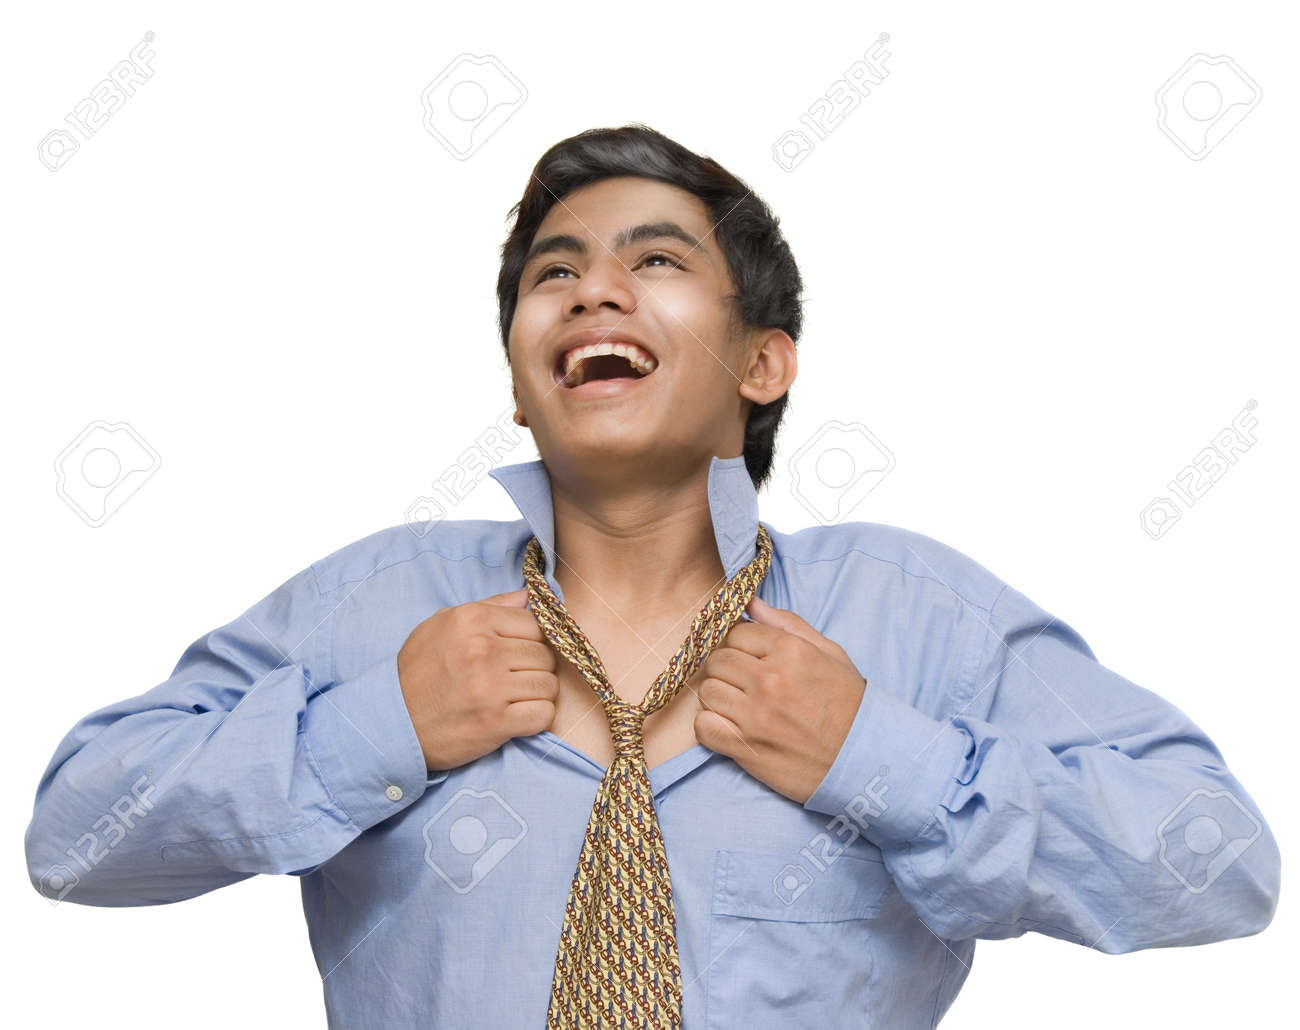 Young Indian or Asian corporate businessman cheering, smiling and opening his collar and necktie, breathing free and liberated. Isolated over white. - 5064361